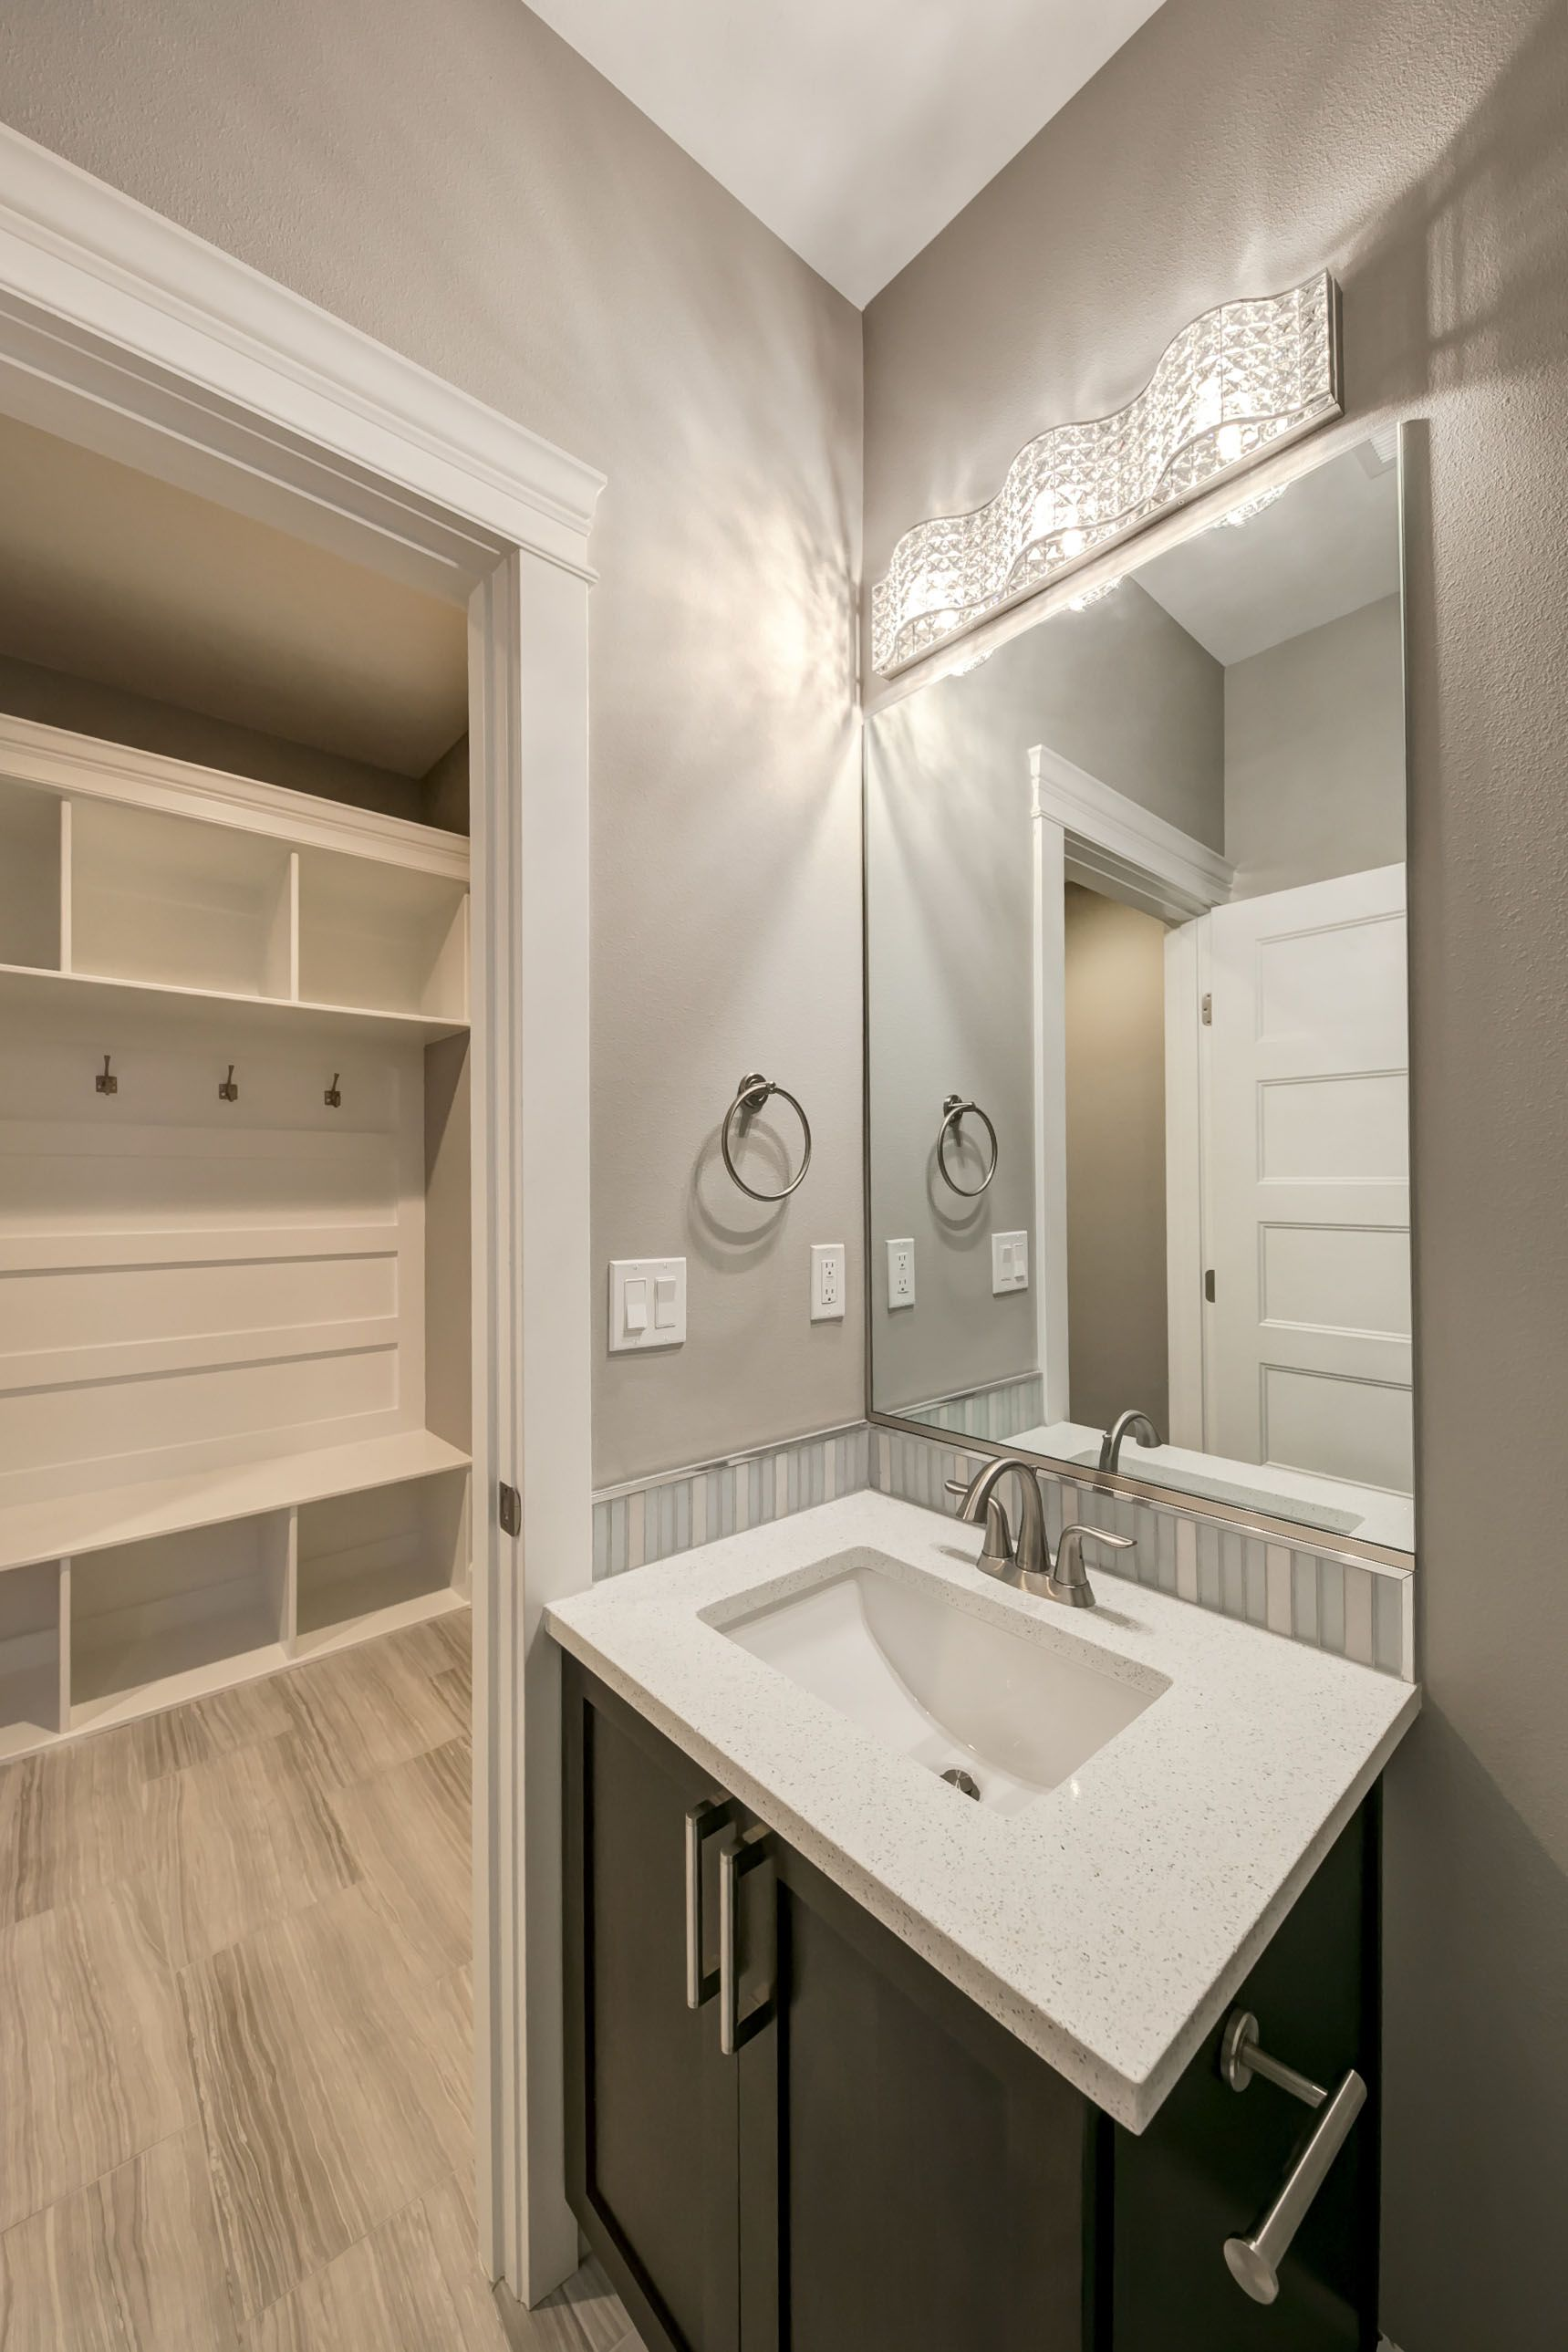 High Quality Elegant Powder Bath From Prodigy Homes. Sparkling Vanity Light, White  Quartz Countertop, And